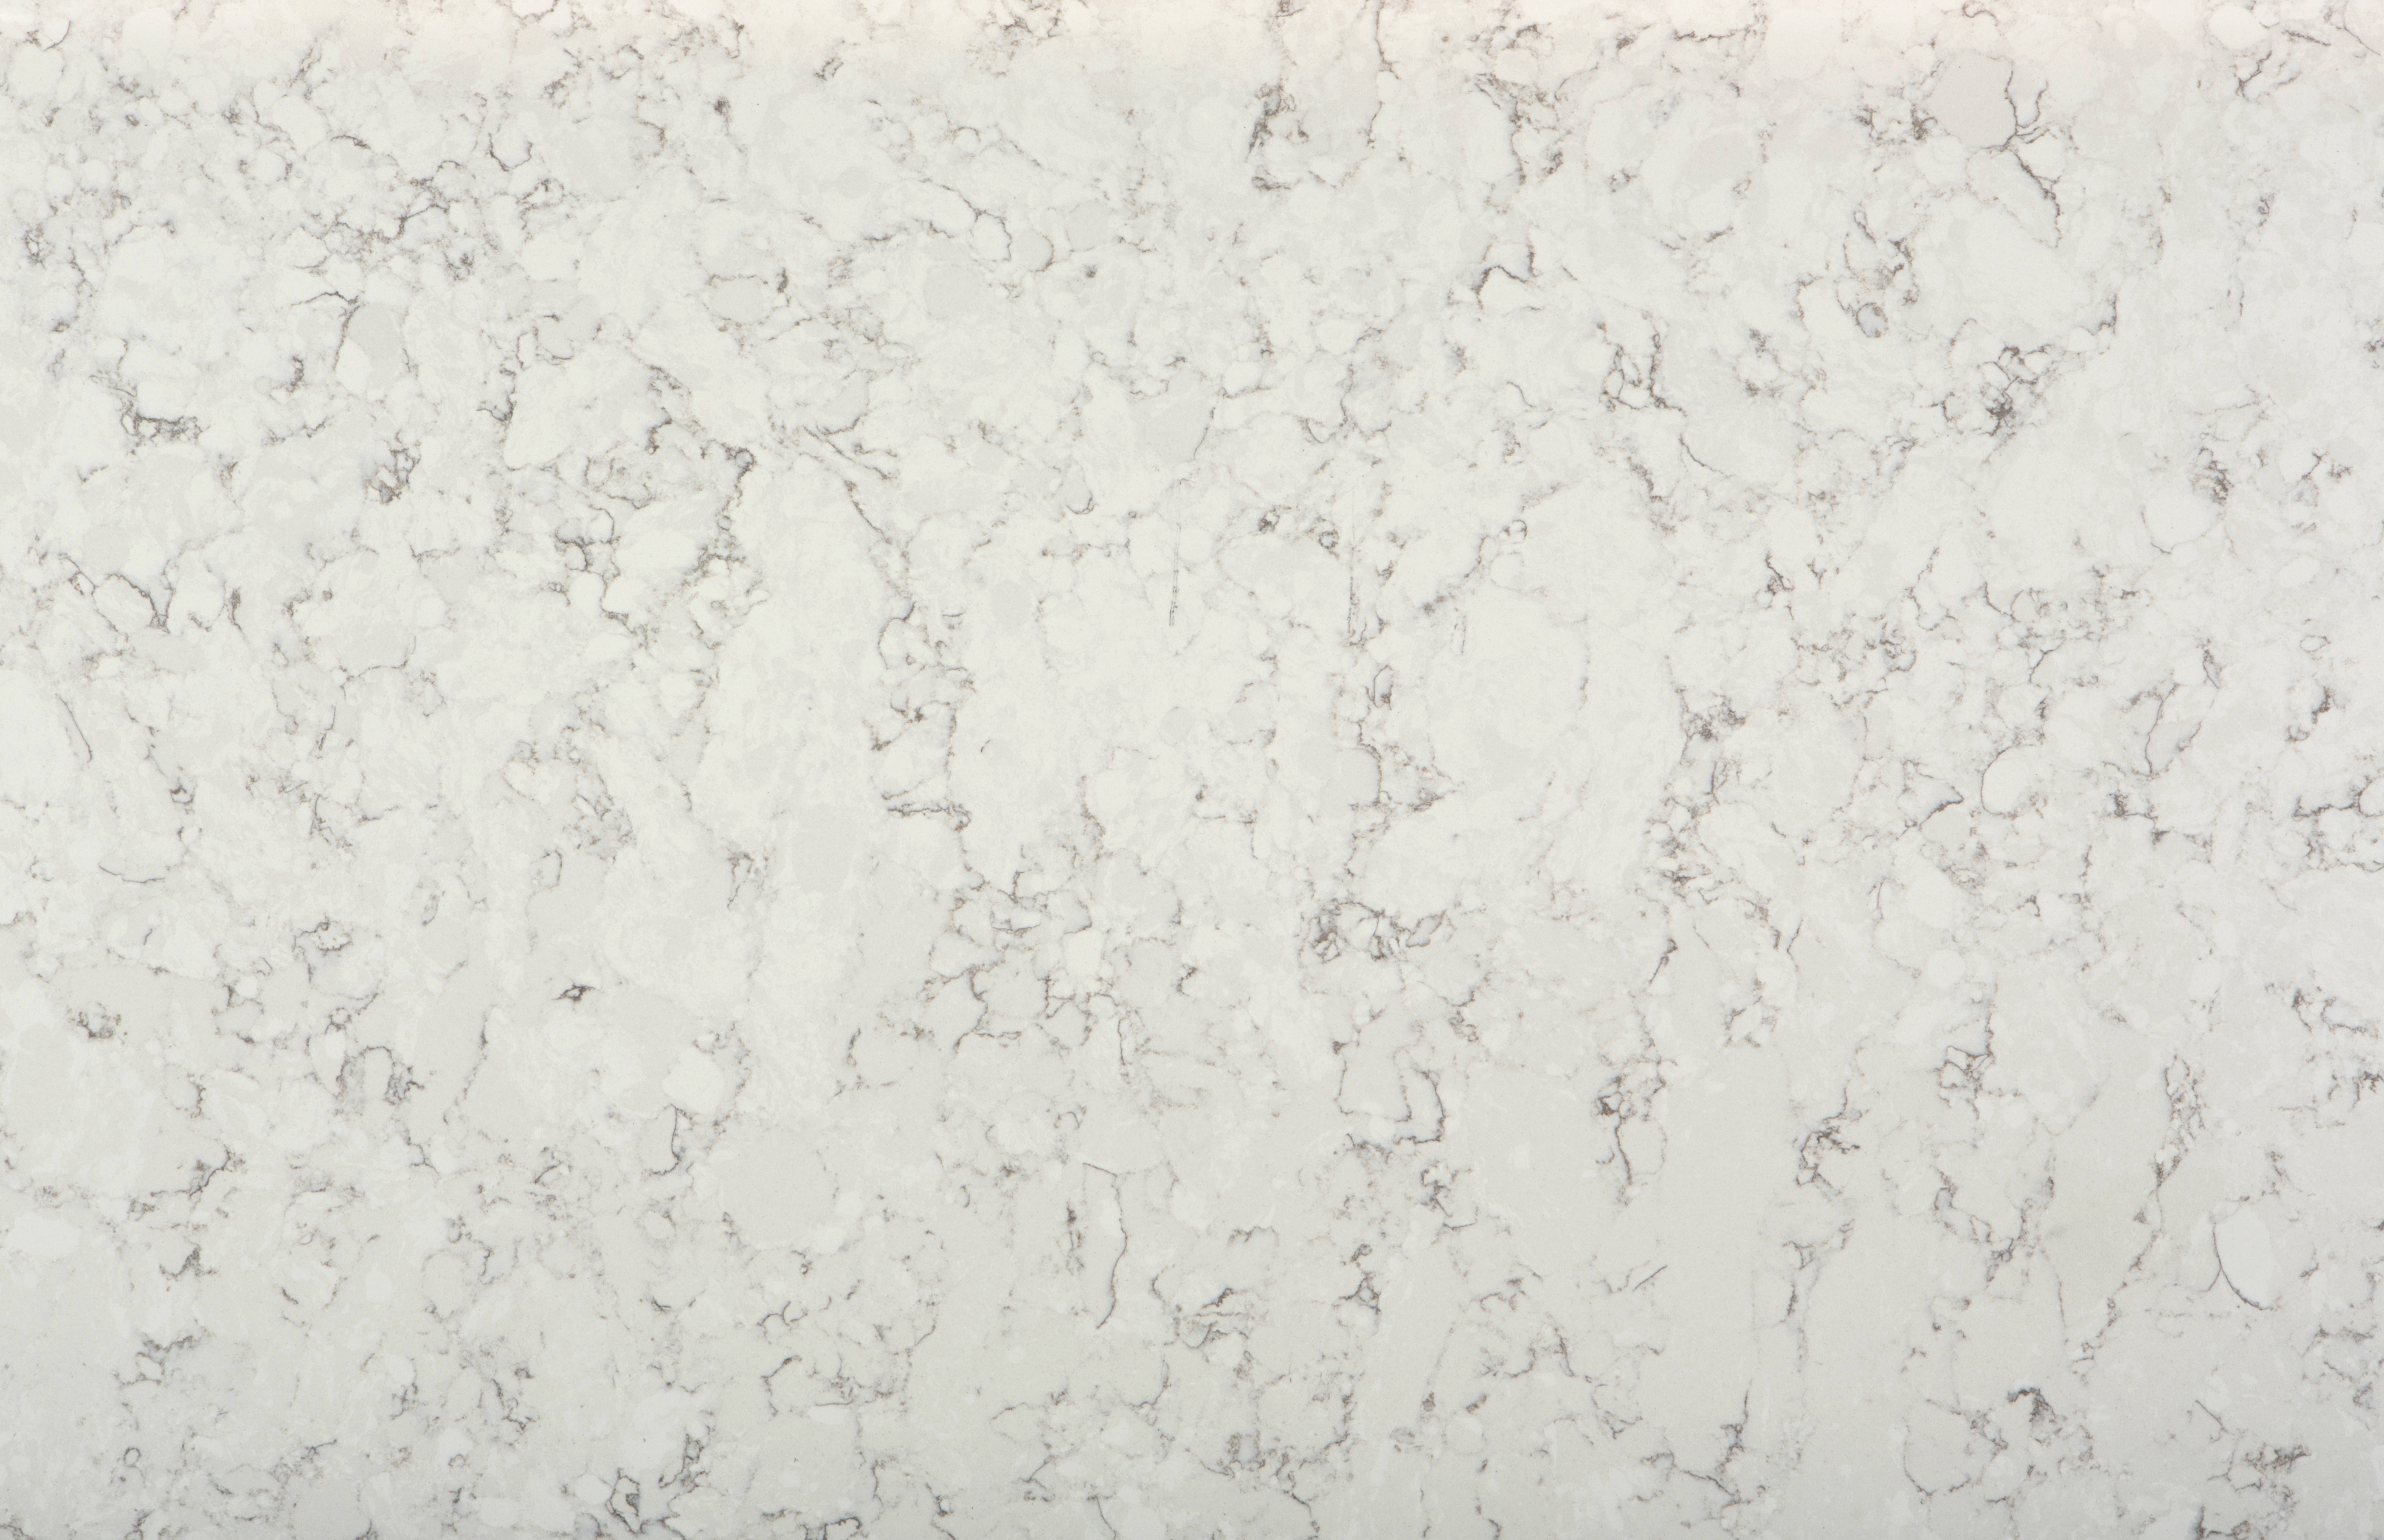 https://palmbeachcountertops.com/wp-content/uploads/2019/02/Silestone-Blanco-Orion.jpg